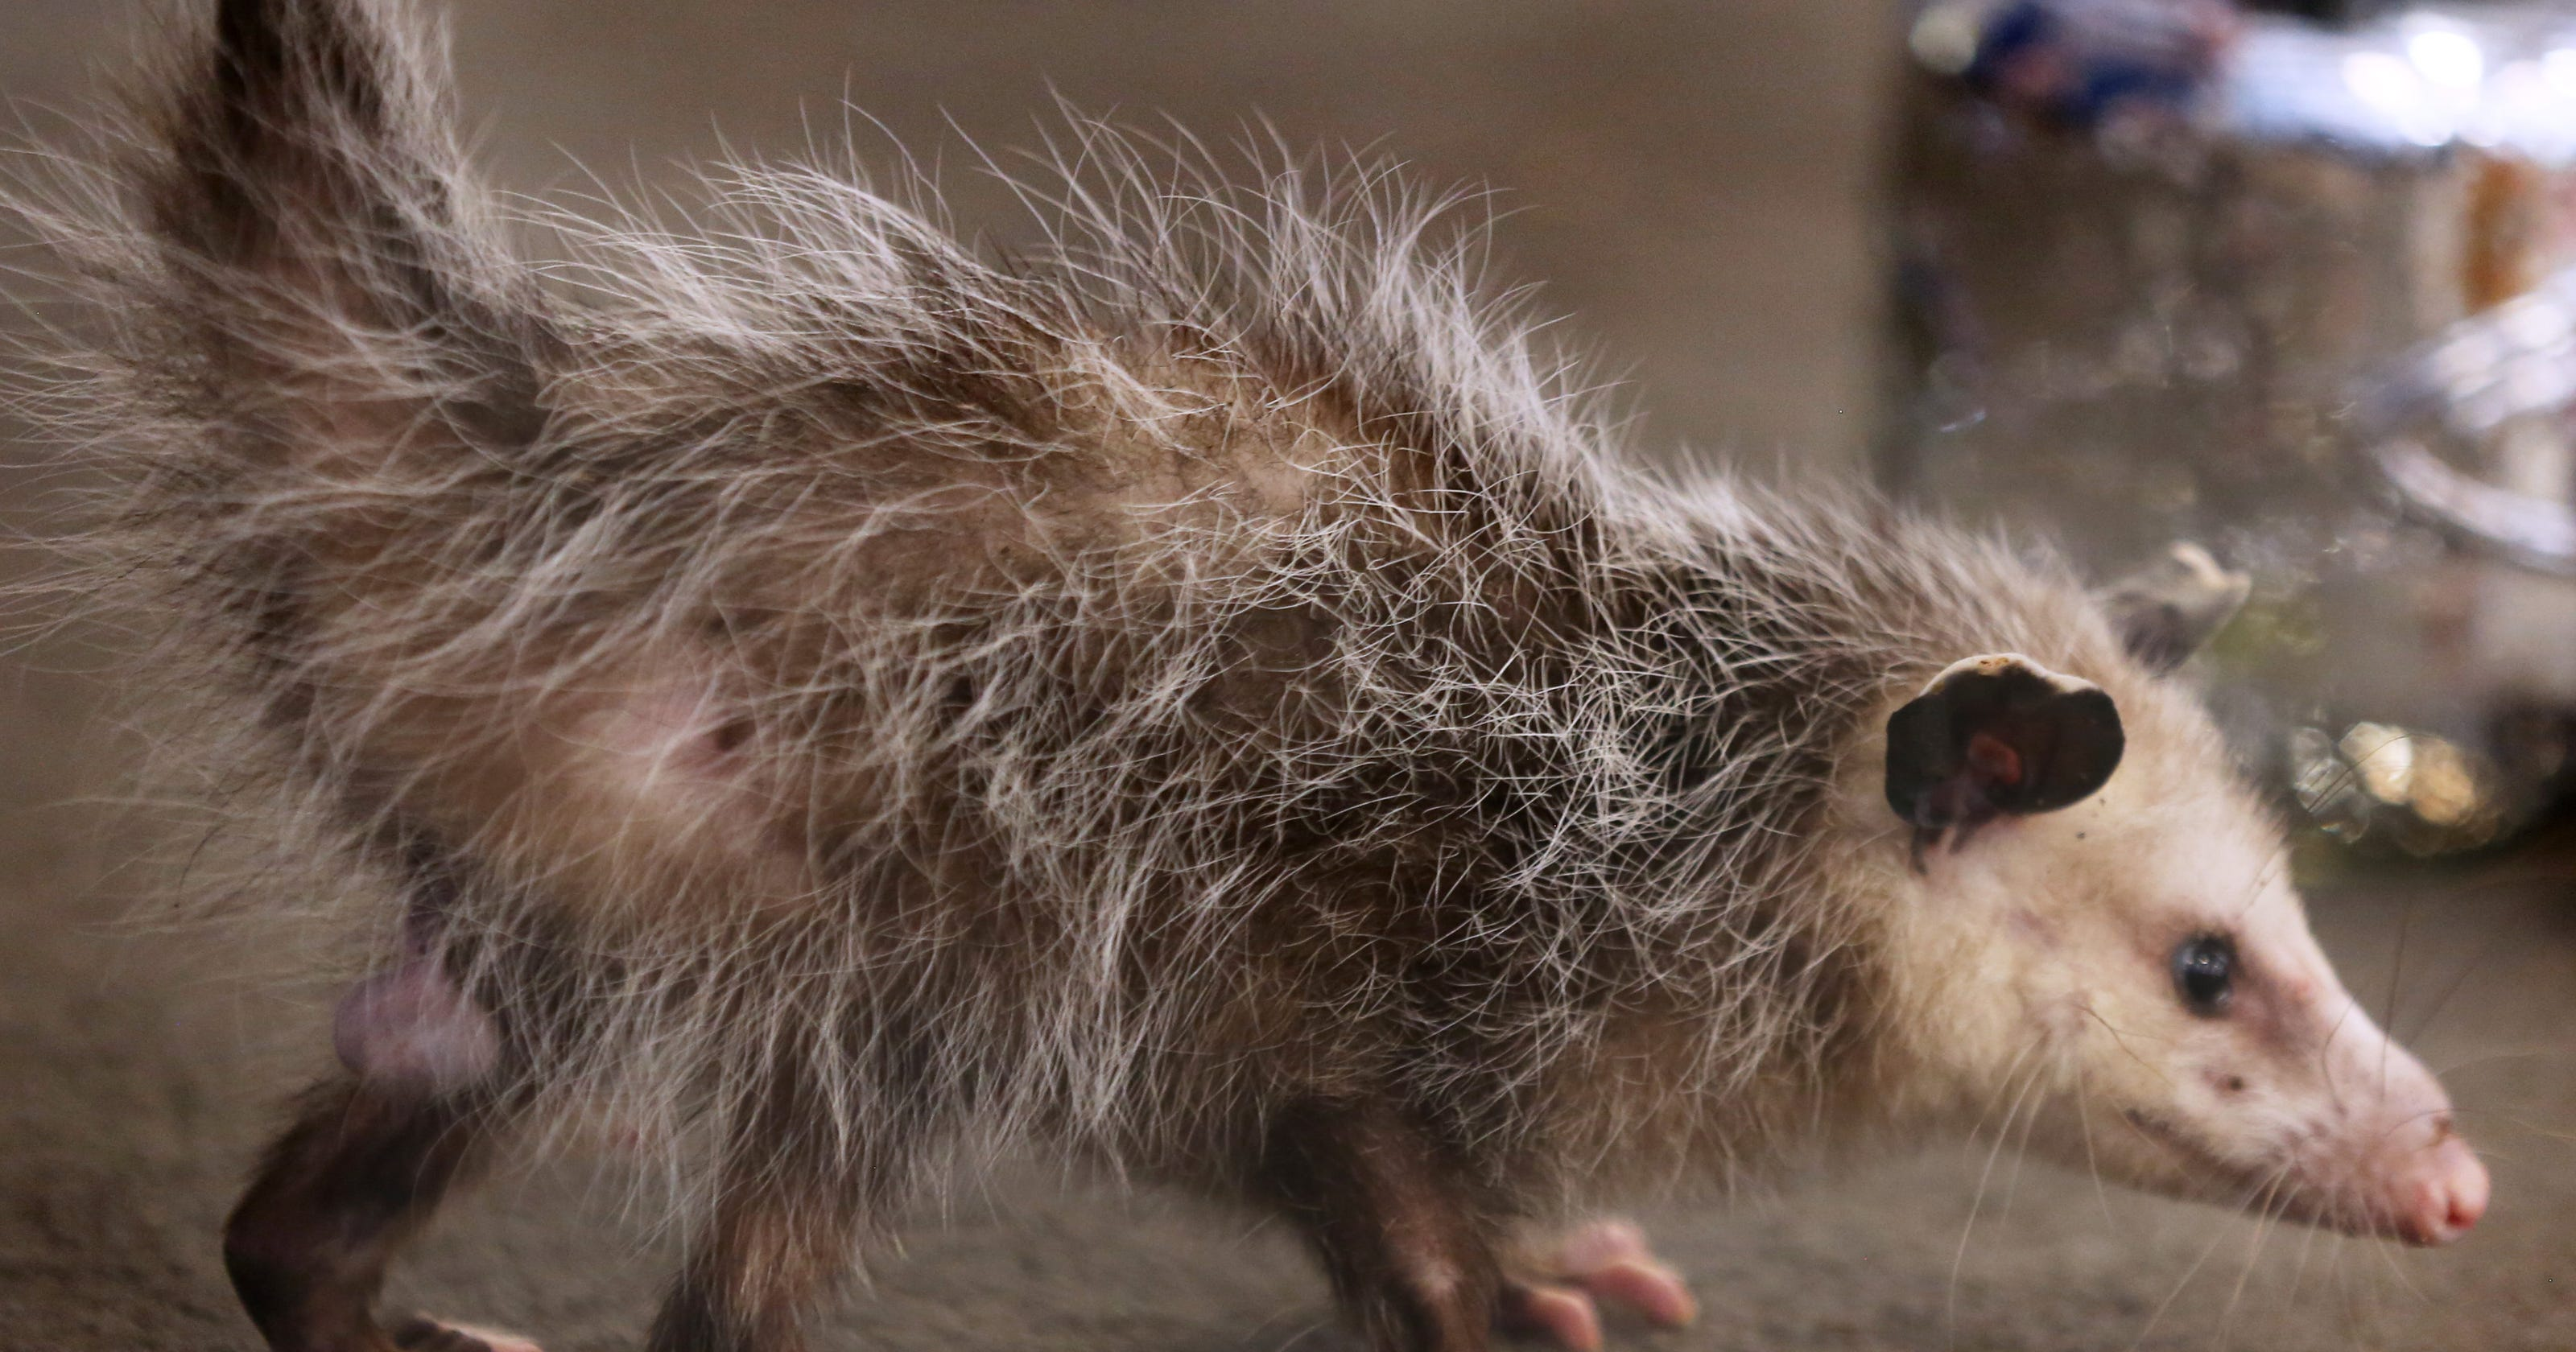 Opossum is nature's 'living fossil'